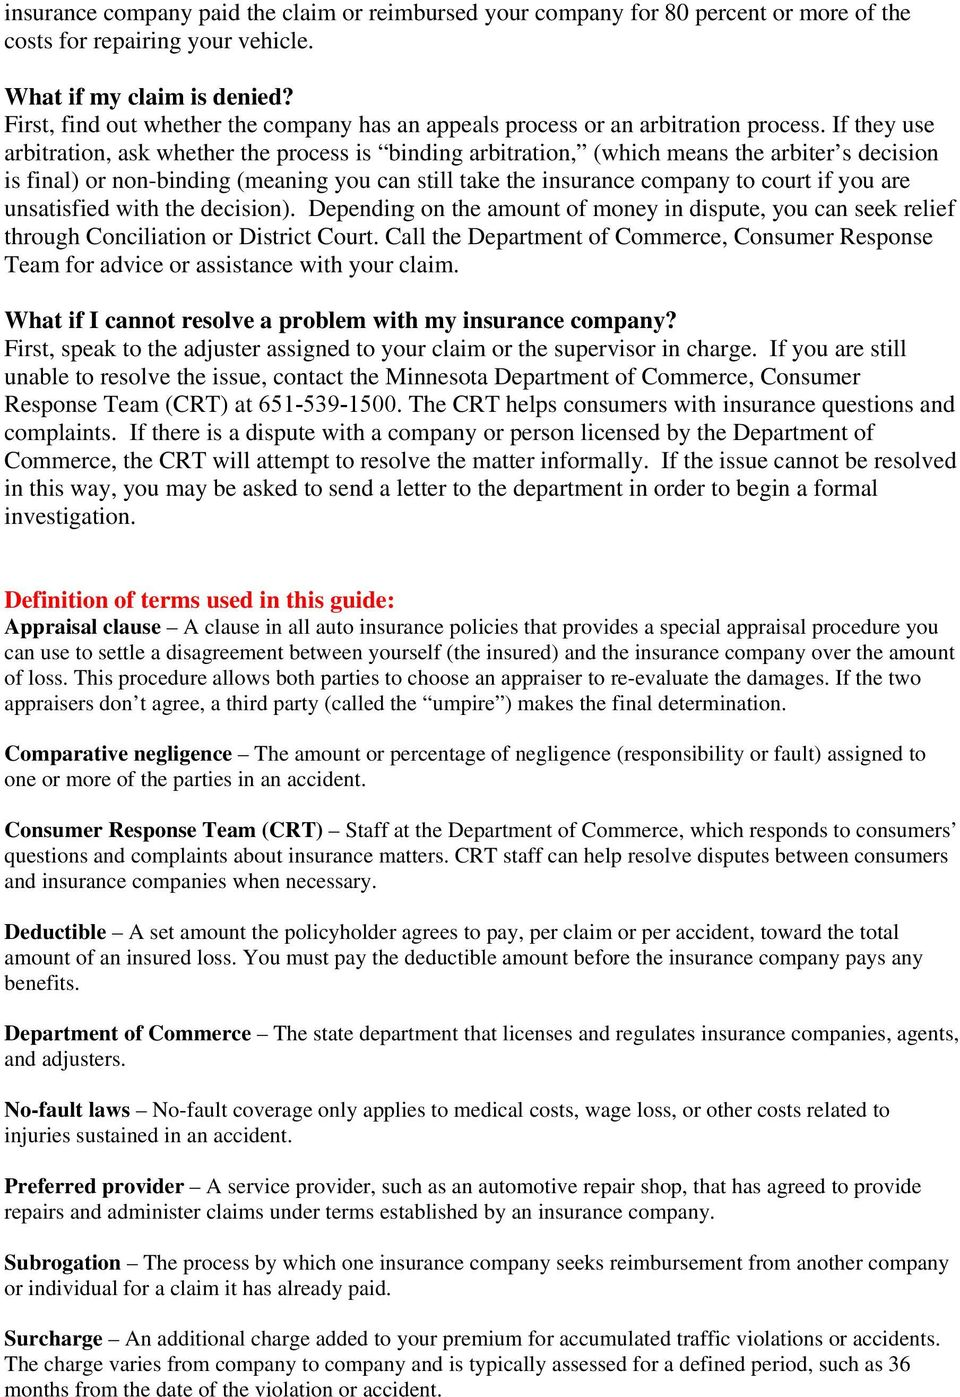 auto insurance claims & claimants rights - pdf